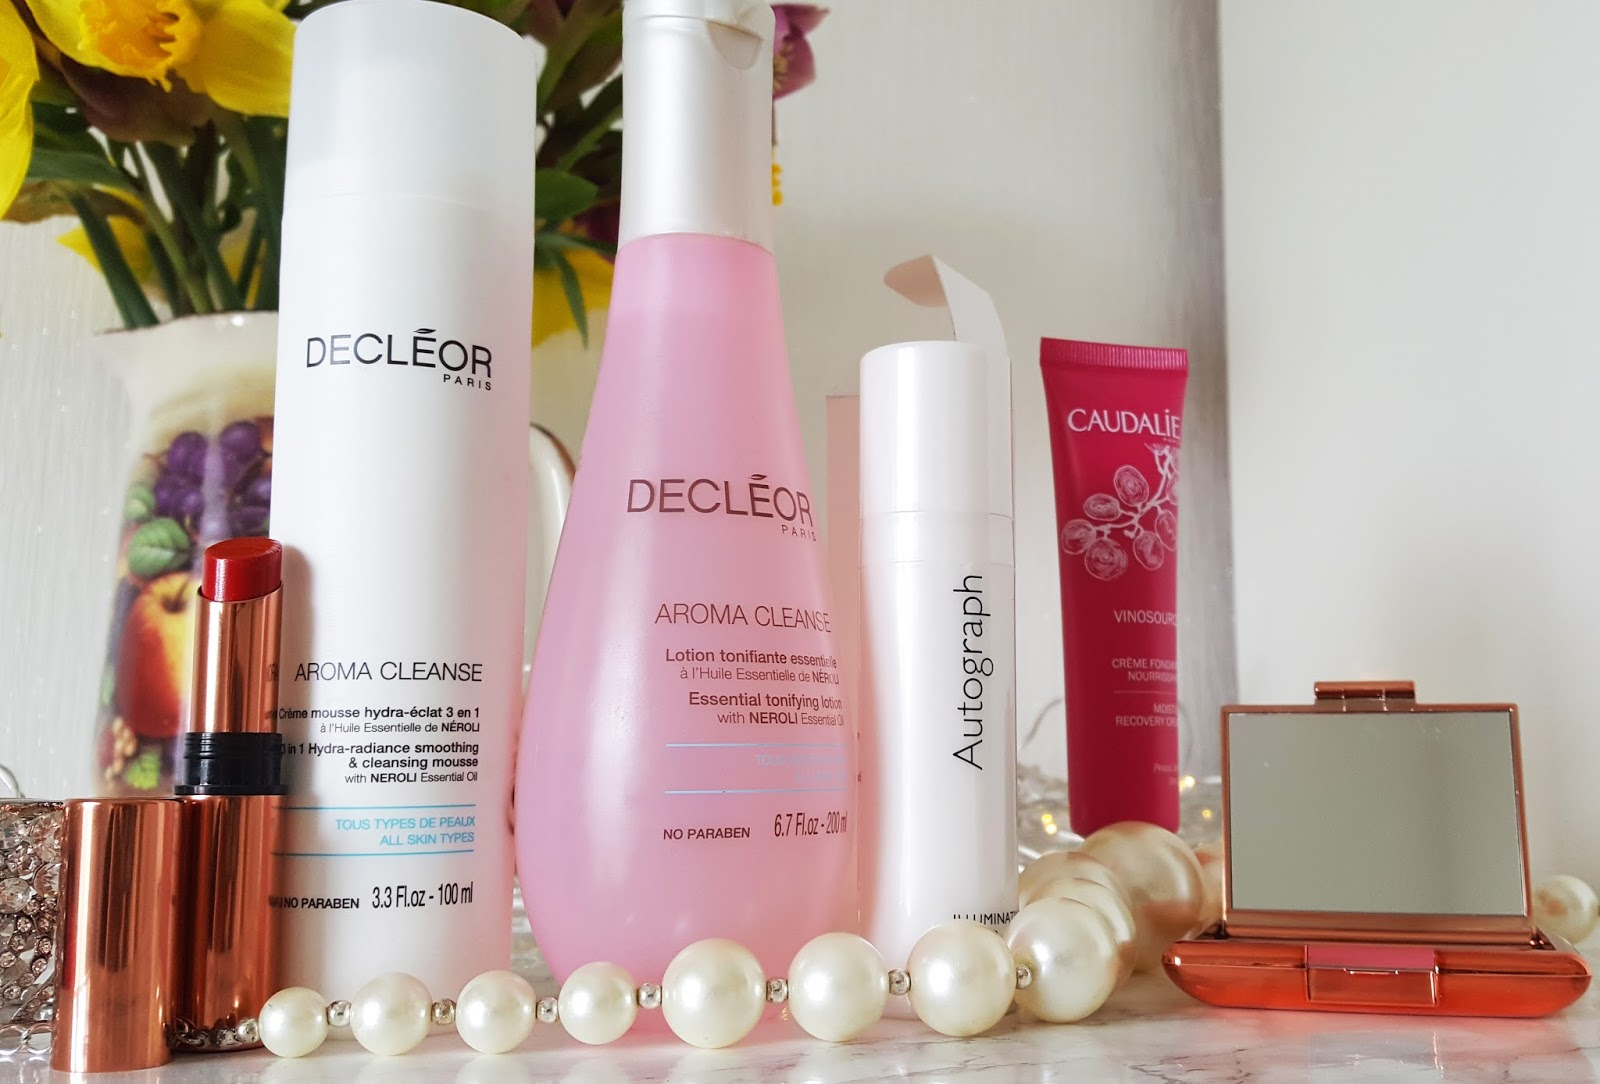 Decleor Aroma Clense 3 in 1 smoothing and cleansing mousse and M&S Autograph cream blusher are among the products tested by Is This Mutton? in February 2017